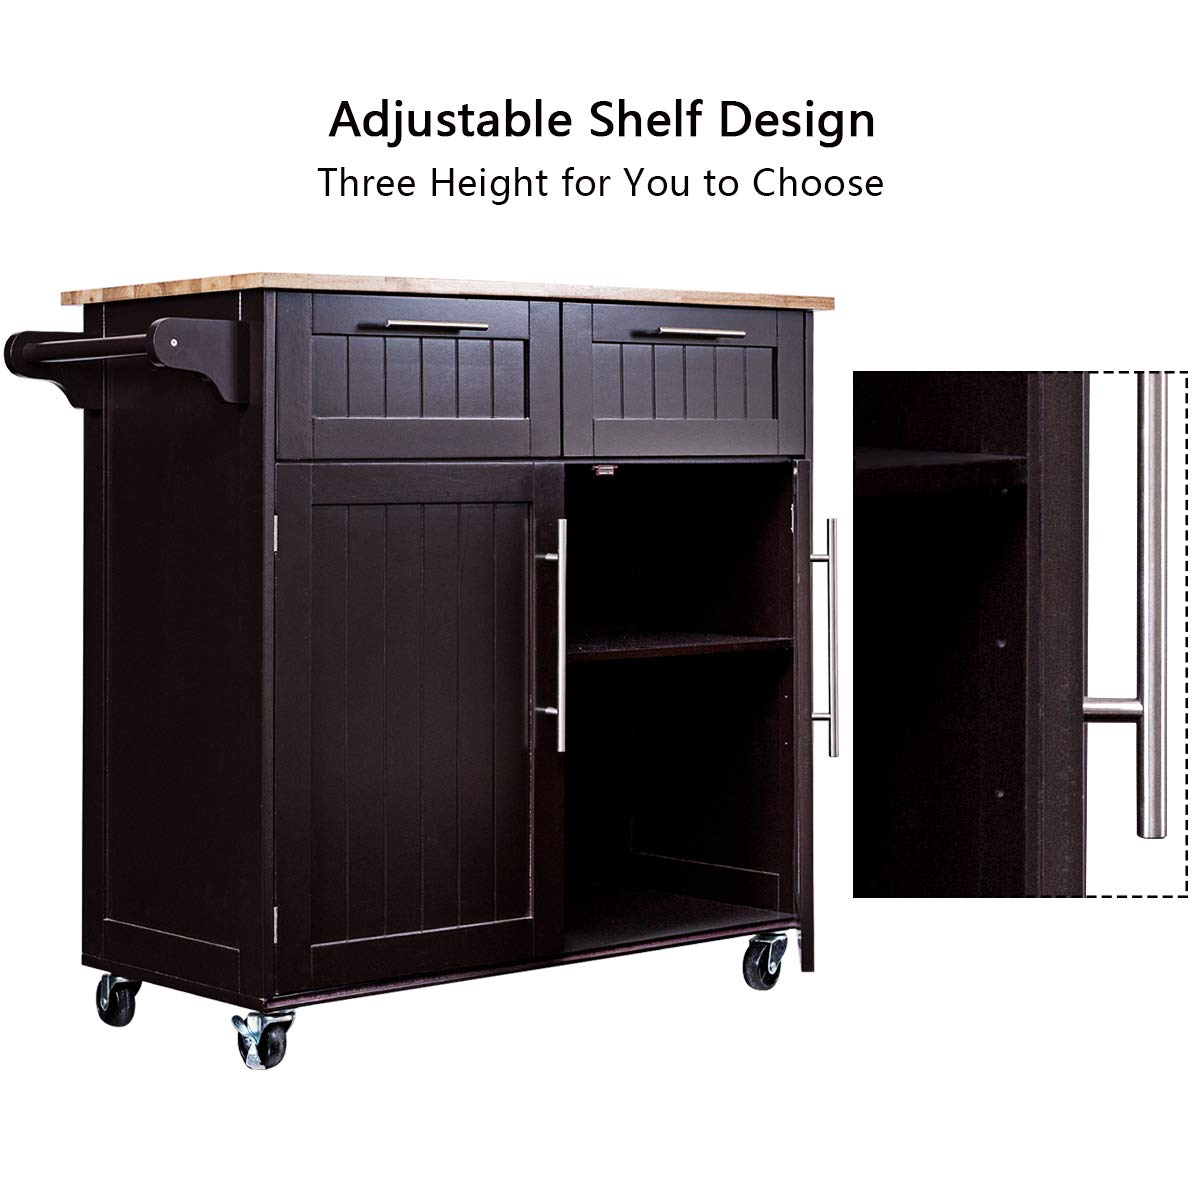 Giantex Kitchen Island Cart Rolling Storage Trolley Cart Home and Restaurant Serving Utility Cart with Drawers,Cabinet, Towel Rack and Wood Top by Giantex (Image #4)